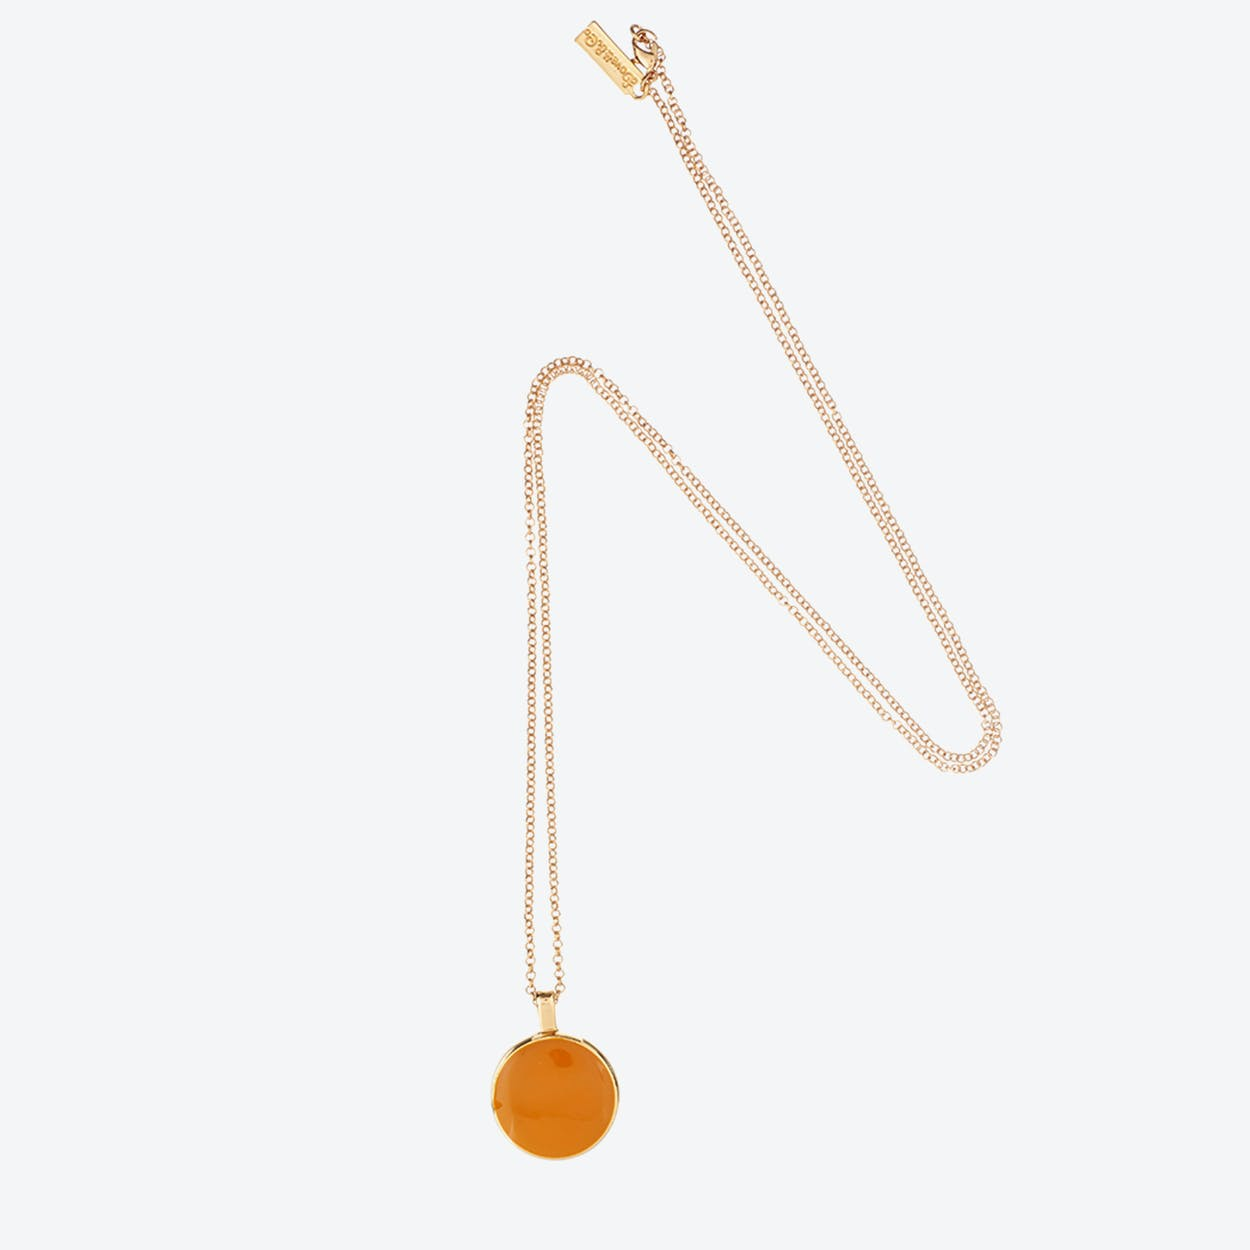 Mother of Pearl Reversible Necklace in Orange